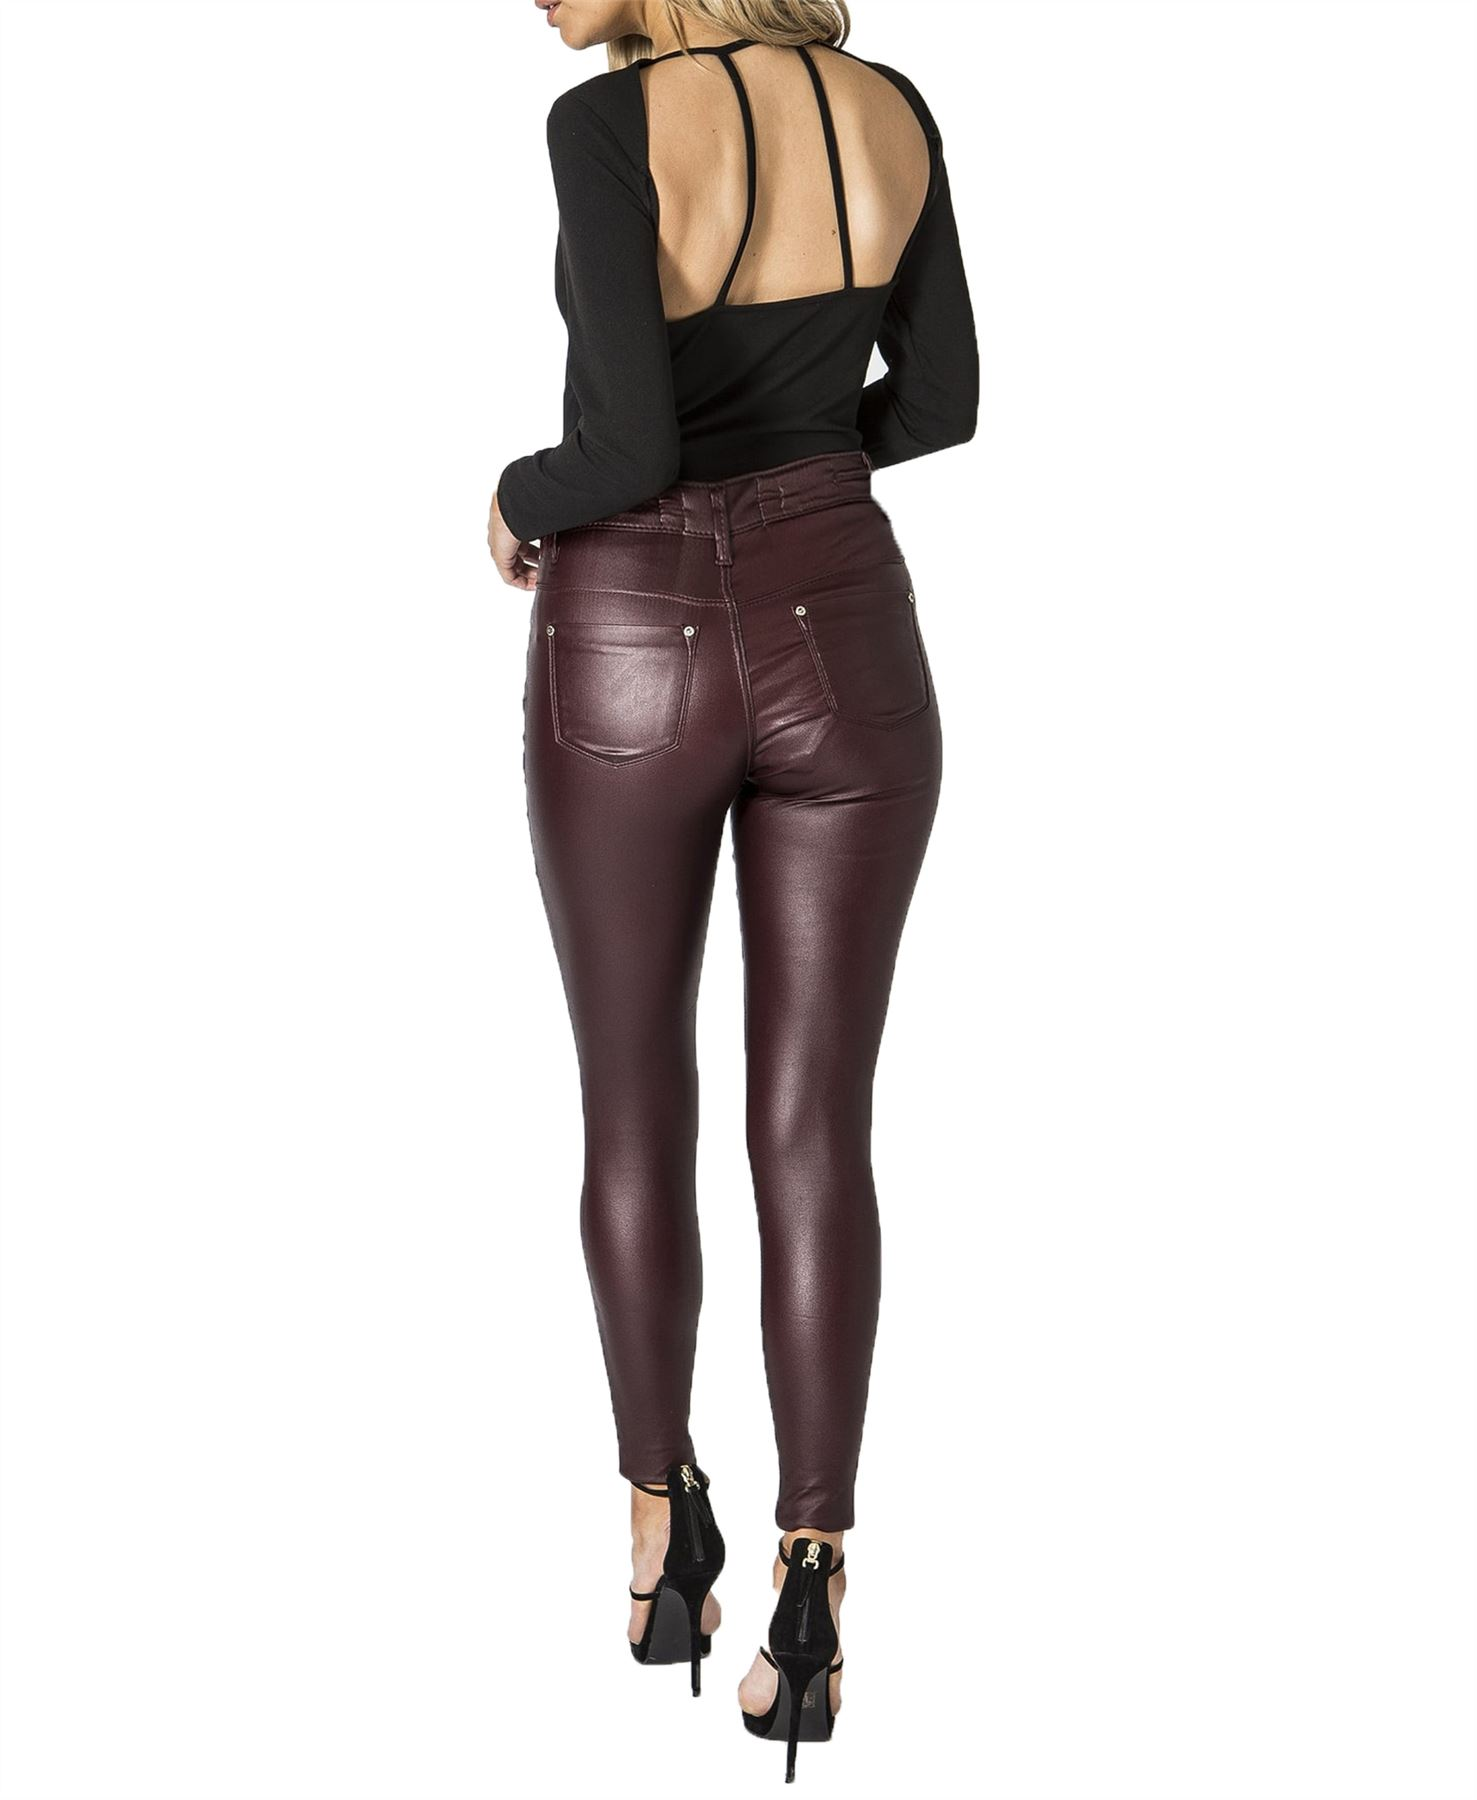 42ccf26cf3a9f Womens Sexy Wet Faux Look PU Stretch High Waisted Slim Fit Jeans ...